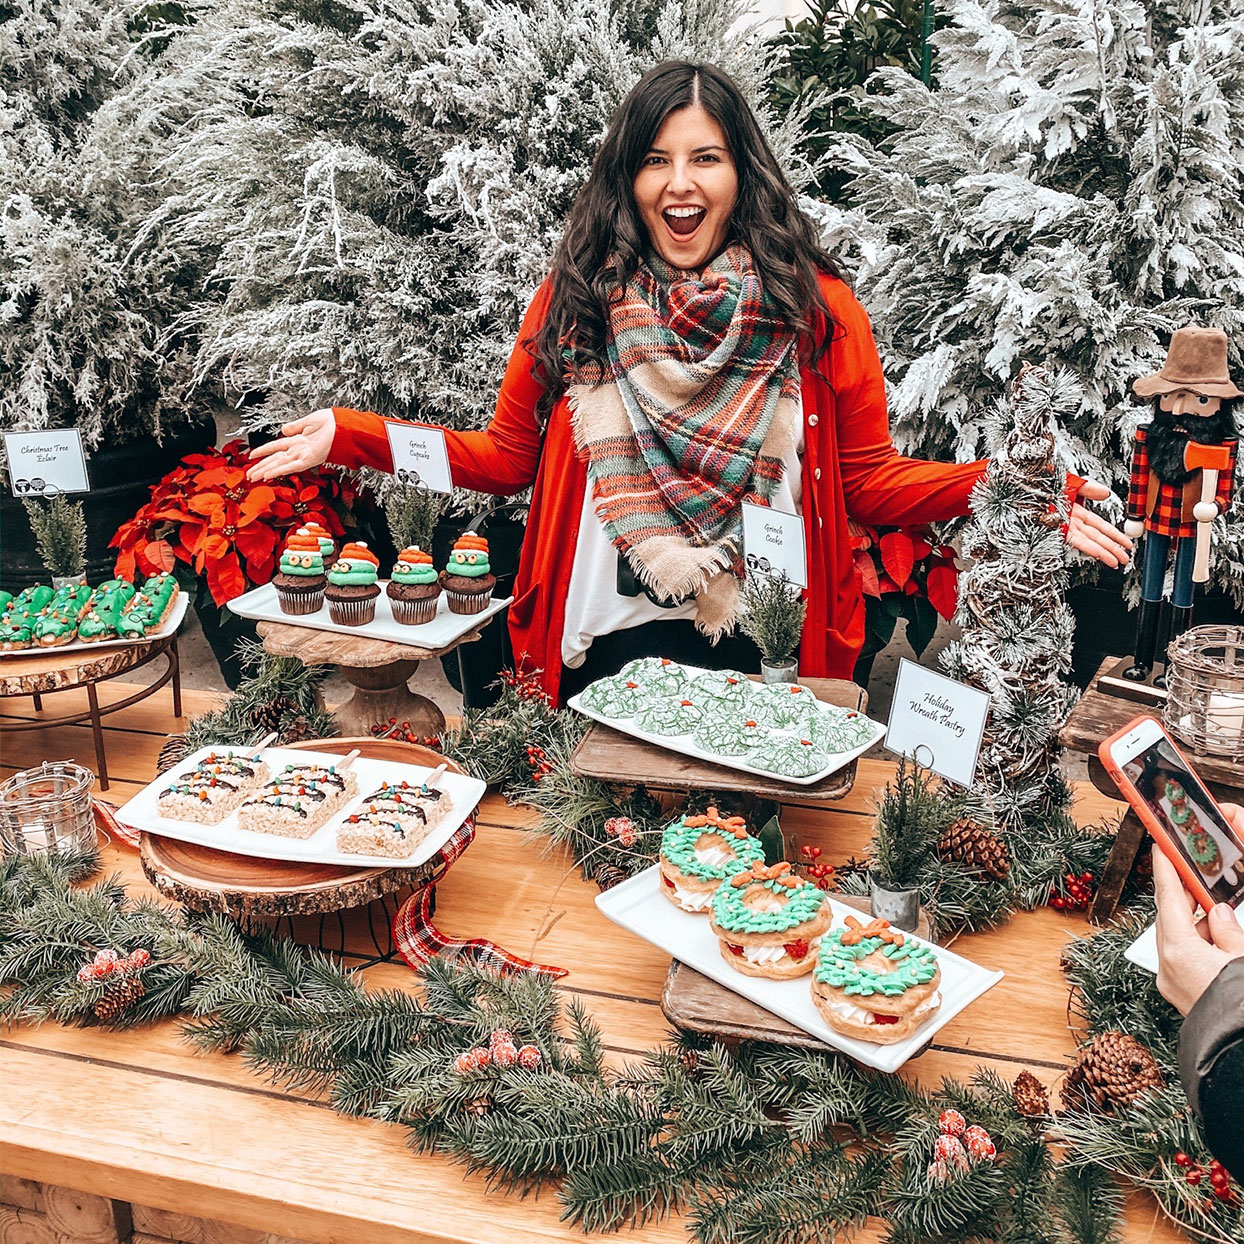 Arielle Calderon standing amongst a table of delicious looking holiday treats